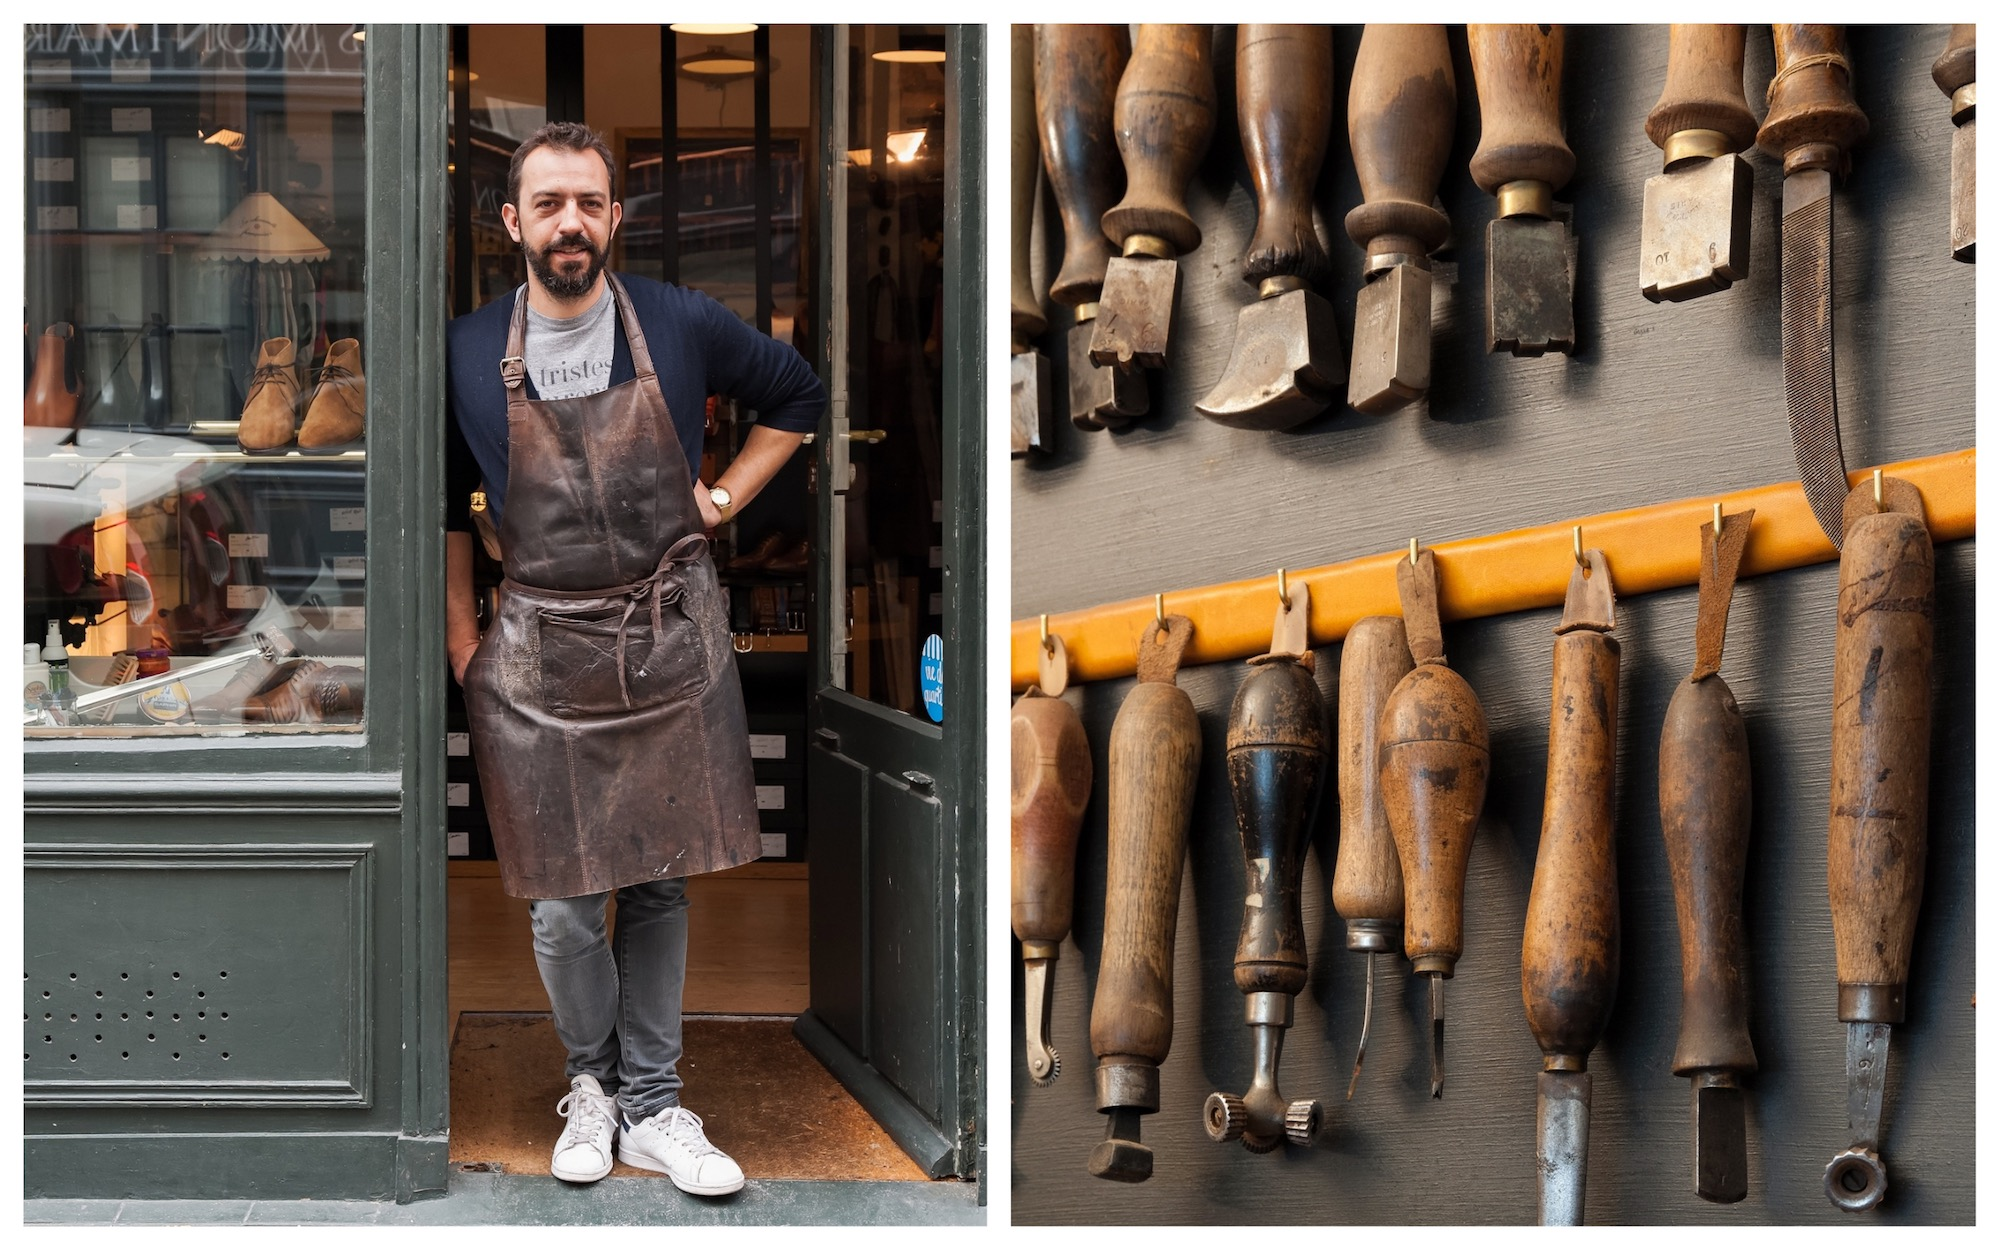 HiP Paris Blog checks out artisanal cobbler Atelier Constance in Montmartre, pictured here, Jérôme Voisin at the door (left) and his tools hanging on the wall (right).